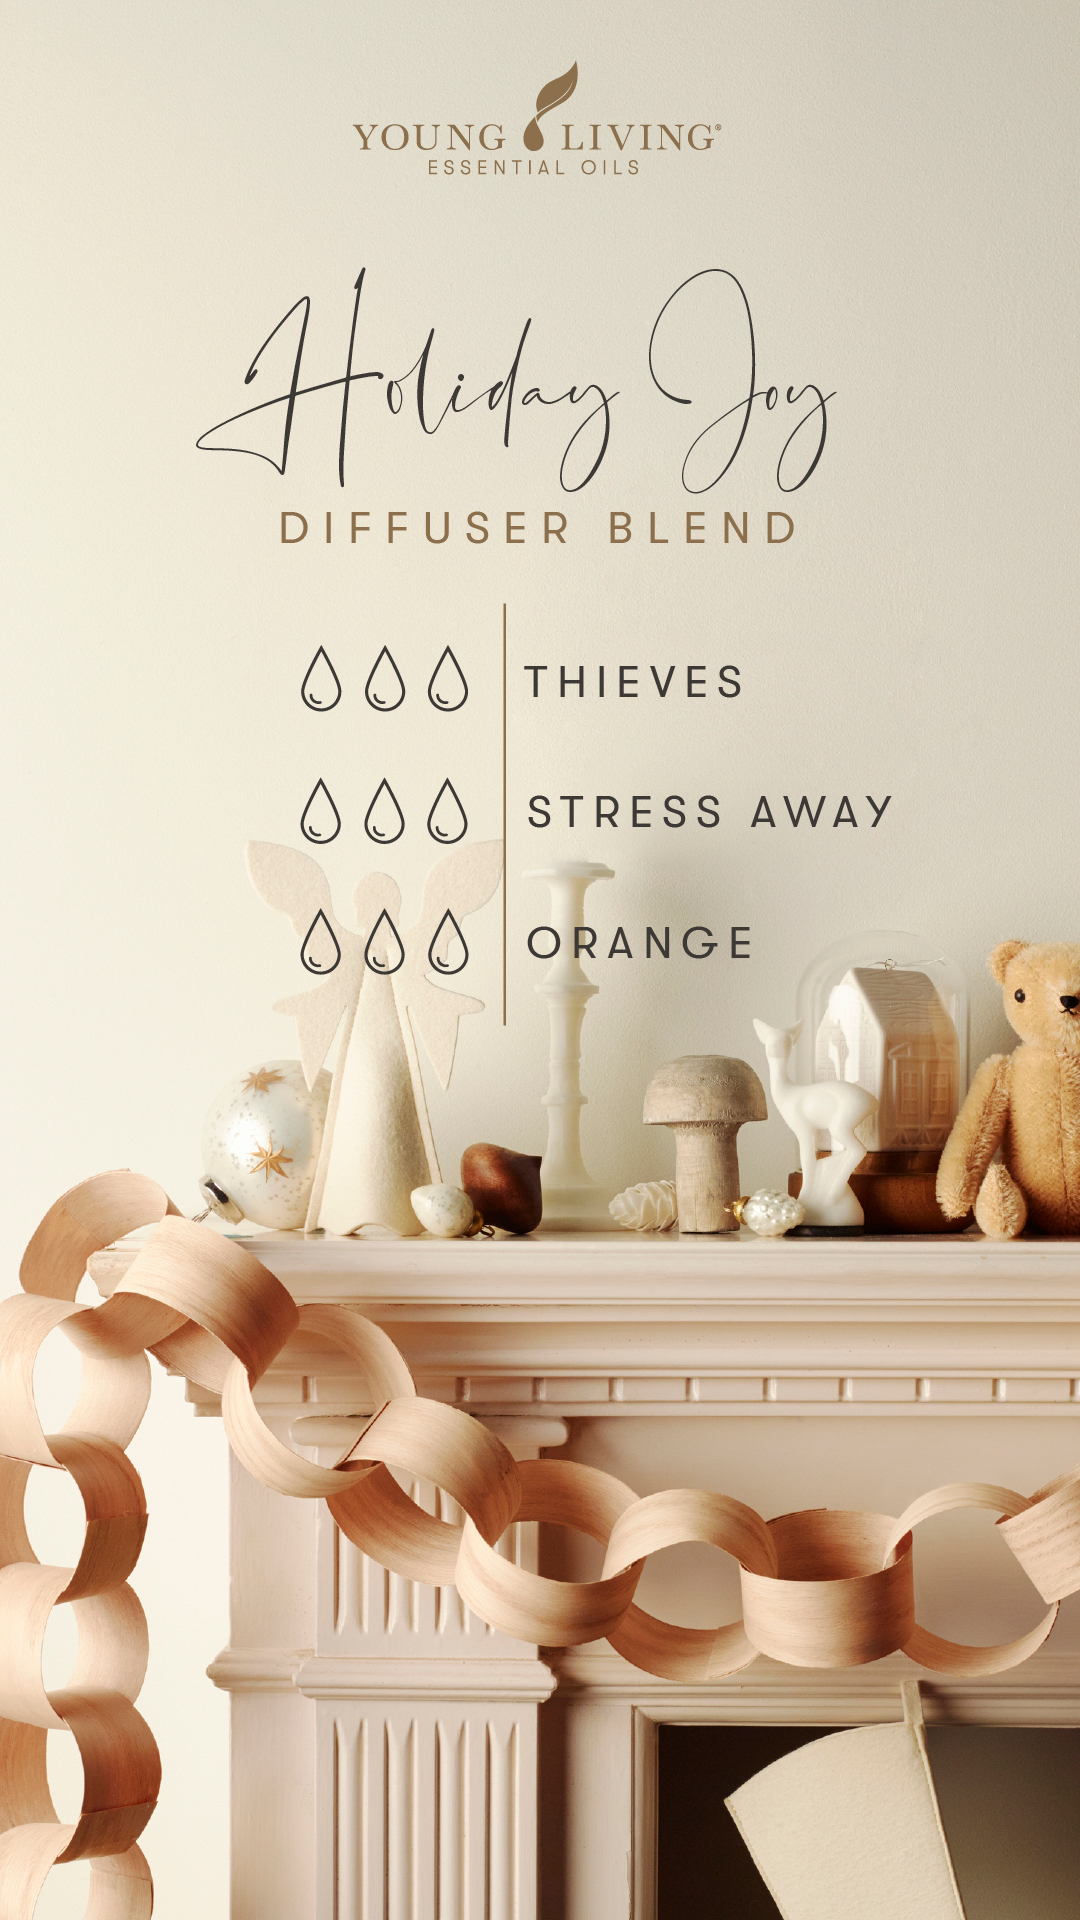 Young Living Holiday Joy essential oil diffuser blend